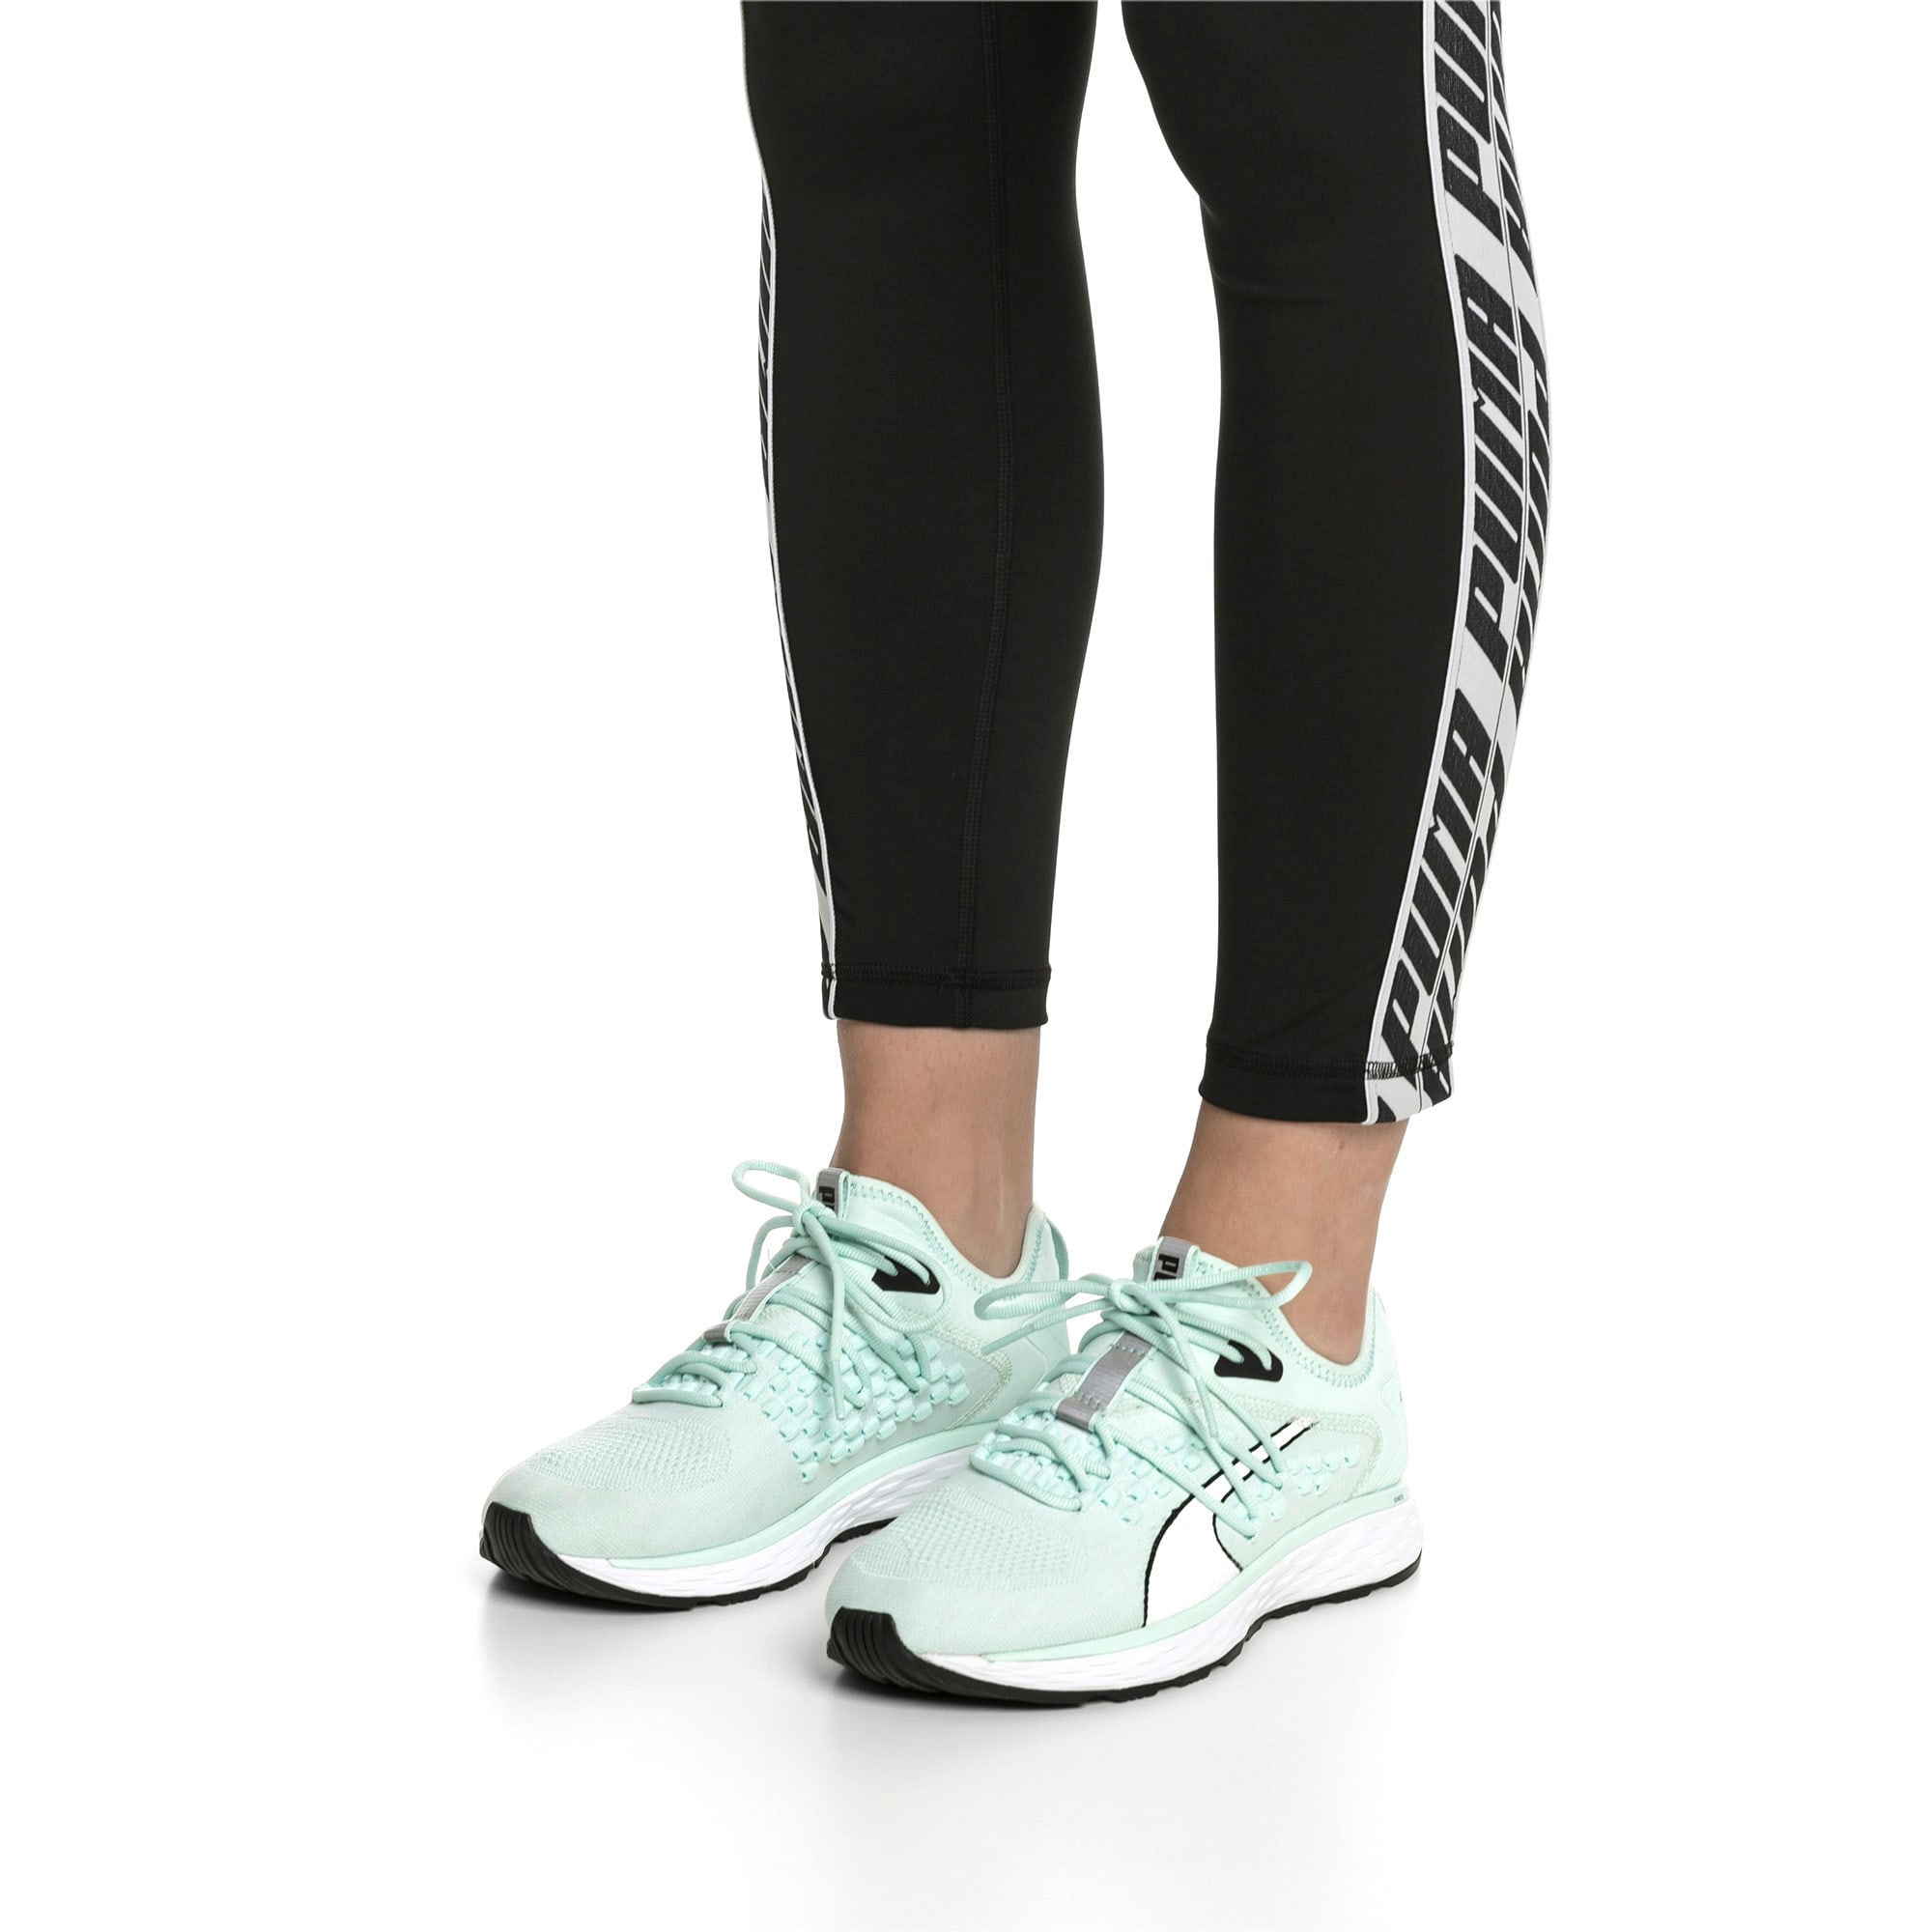 Thumbnail 2 of SPEED 600 FUSEFIT Women's Running Shoes, Fair Aqua-Puma White, medium